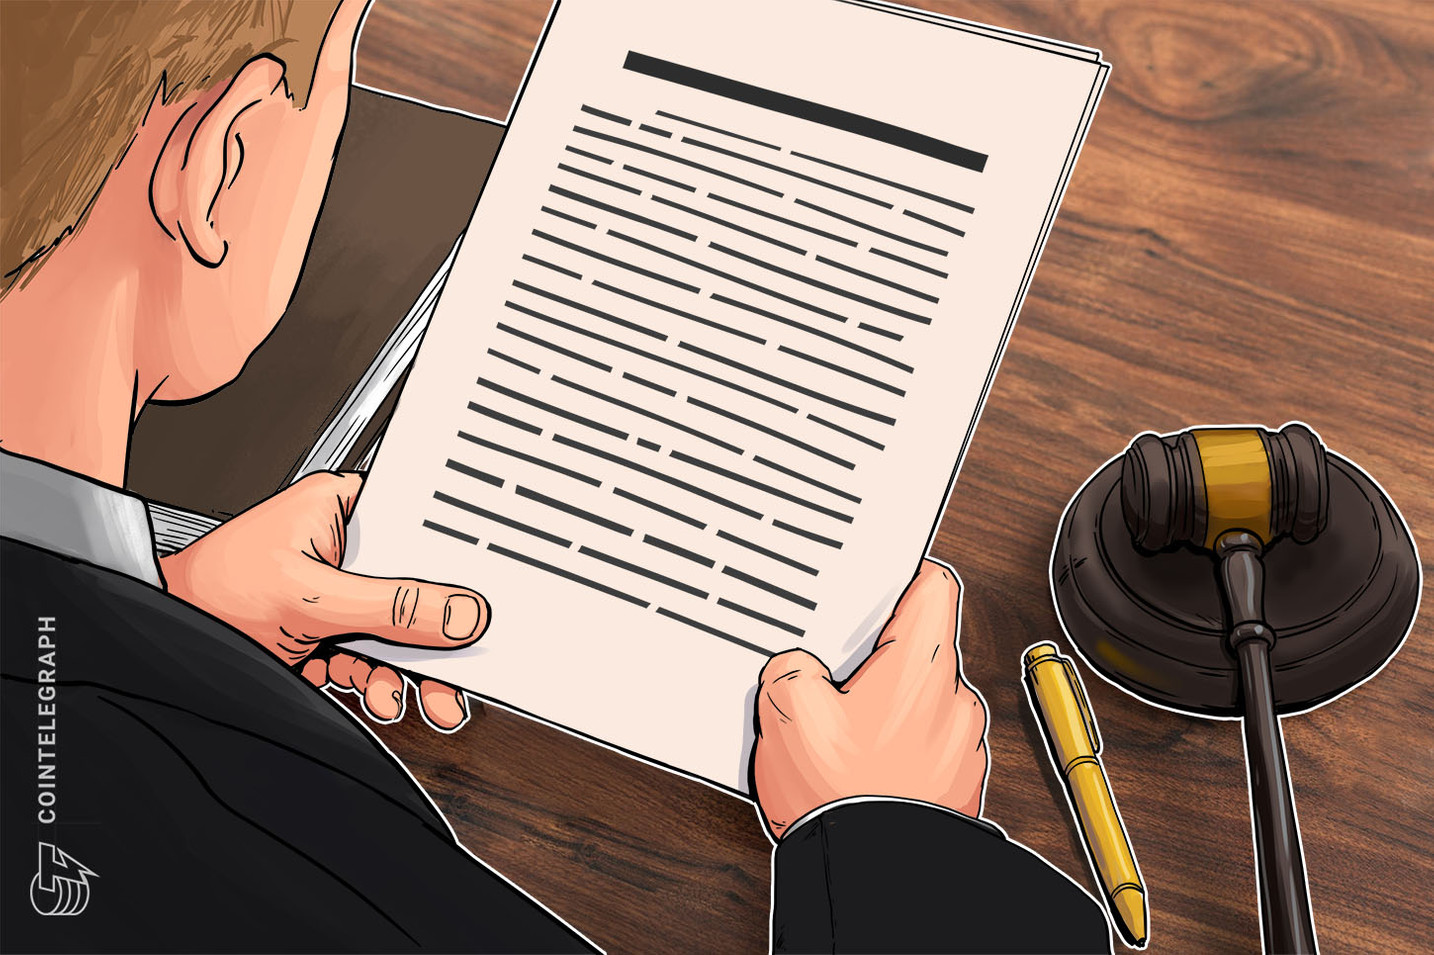 Mt. Gox Gründer Mark Karpeles fechtet Anklage in Illinois an